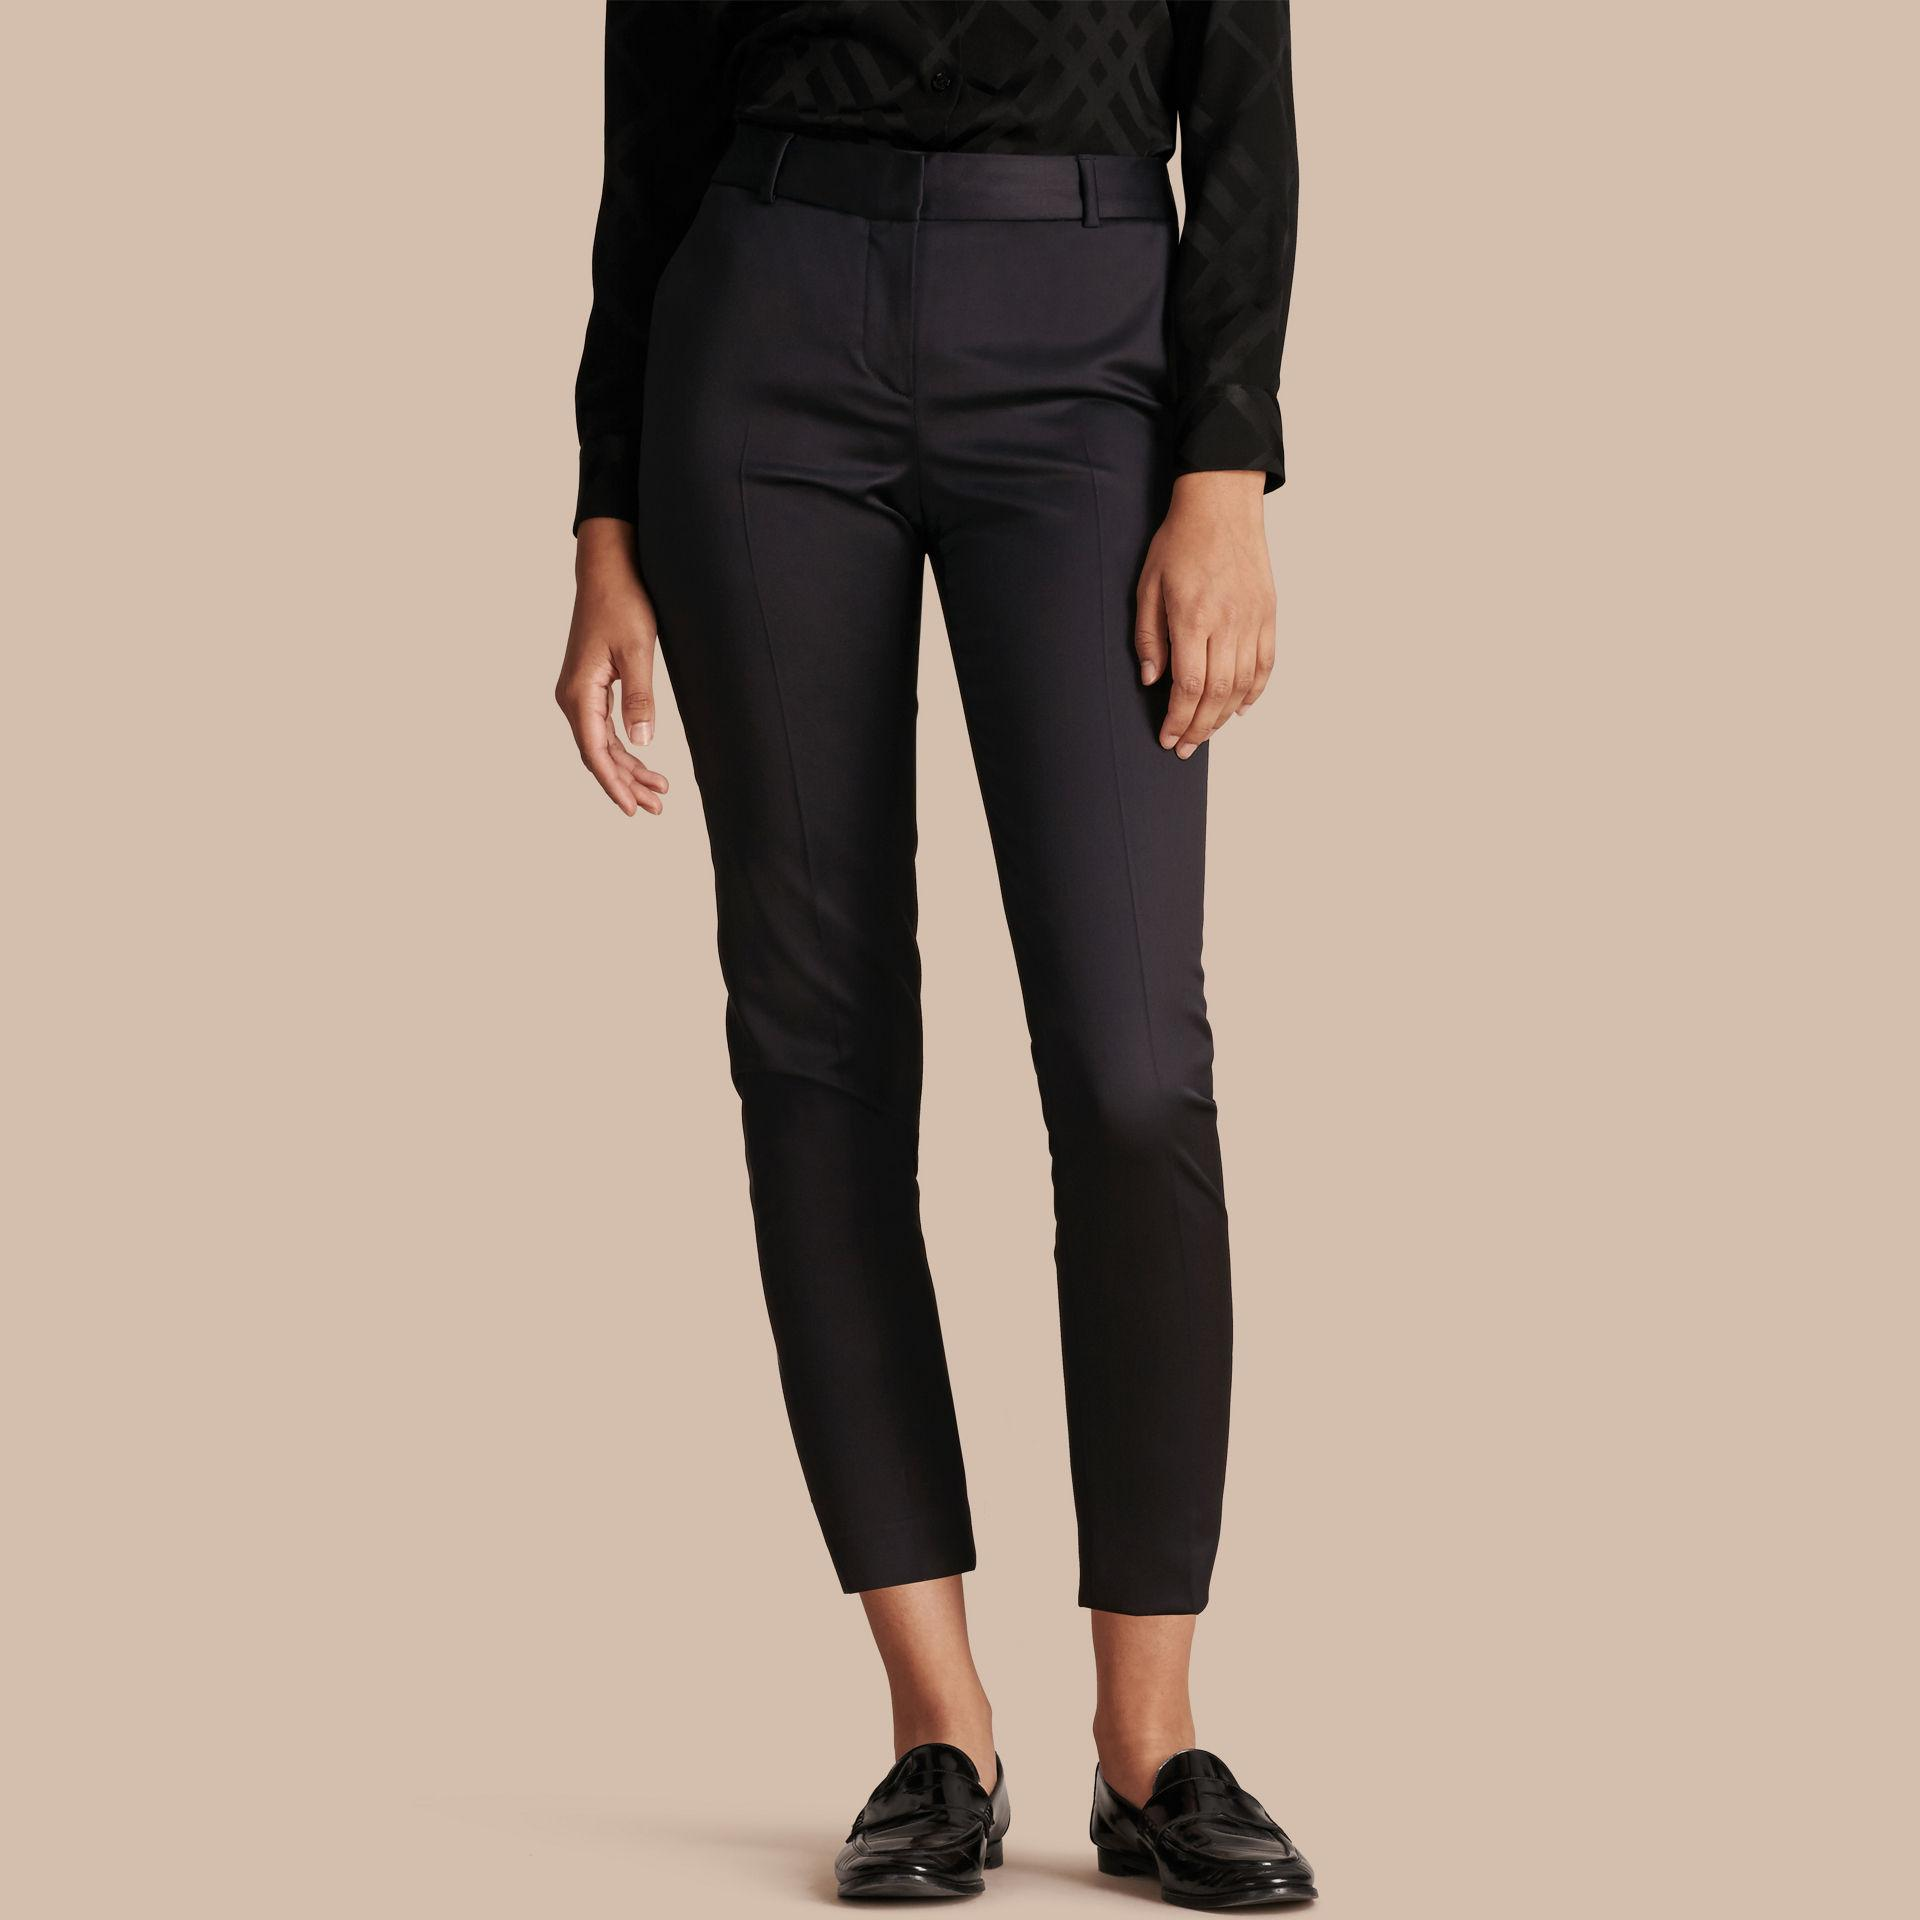 Shop for women's tapered leg trousers at free-desktop-stripper.ml Next day delivery and free returns available. s of products online. Buy women's tapered leg trousers now! Black Lipsy Tailored Elasticated Waist Tapered Trousers. £32 - £ Purple/Grey Check Taper Trousers. £ GreyPurple Window Pane Check Peg Trousers. £ Navy Chino Trousers.